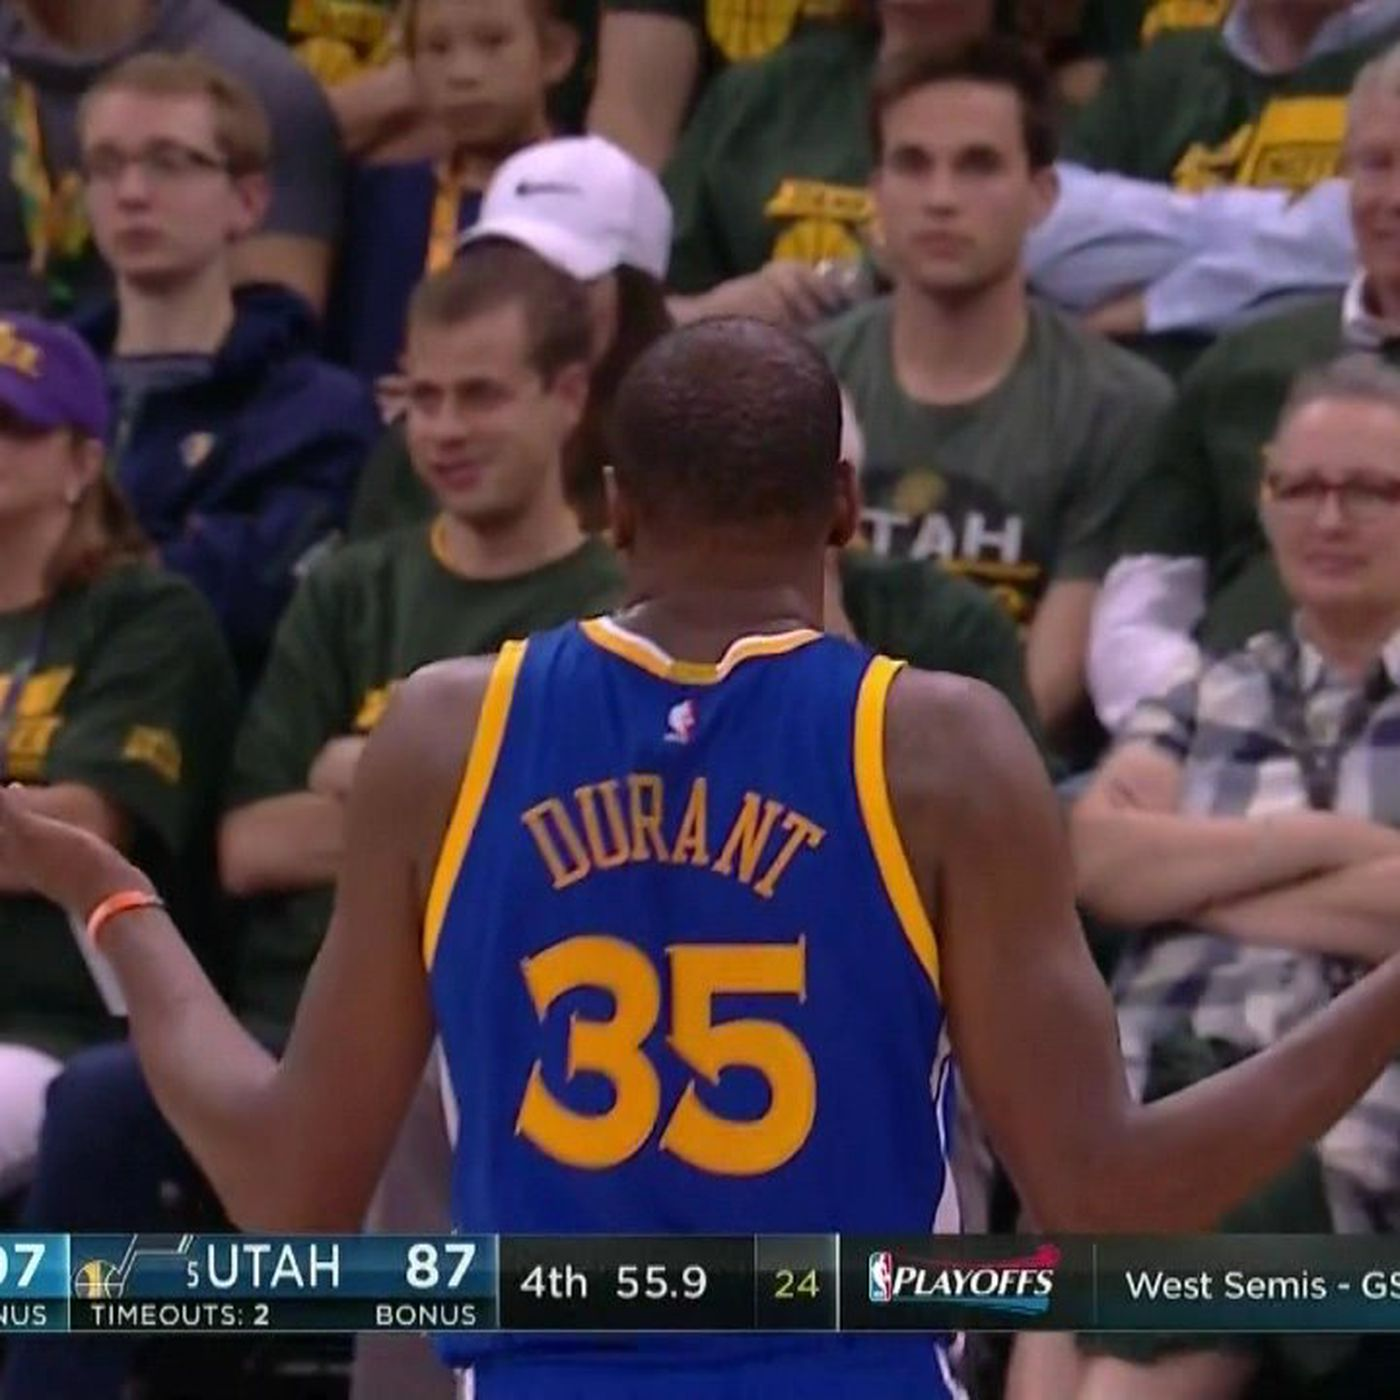 db5c03bdc2f5 Kevin Durant beautifully embraced the villain role in Game 3 against Jazz -  SBNation.com